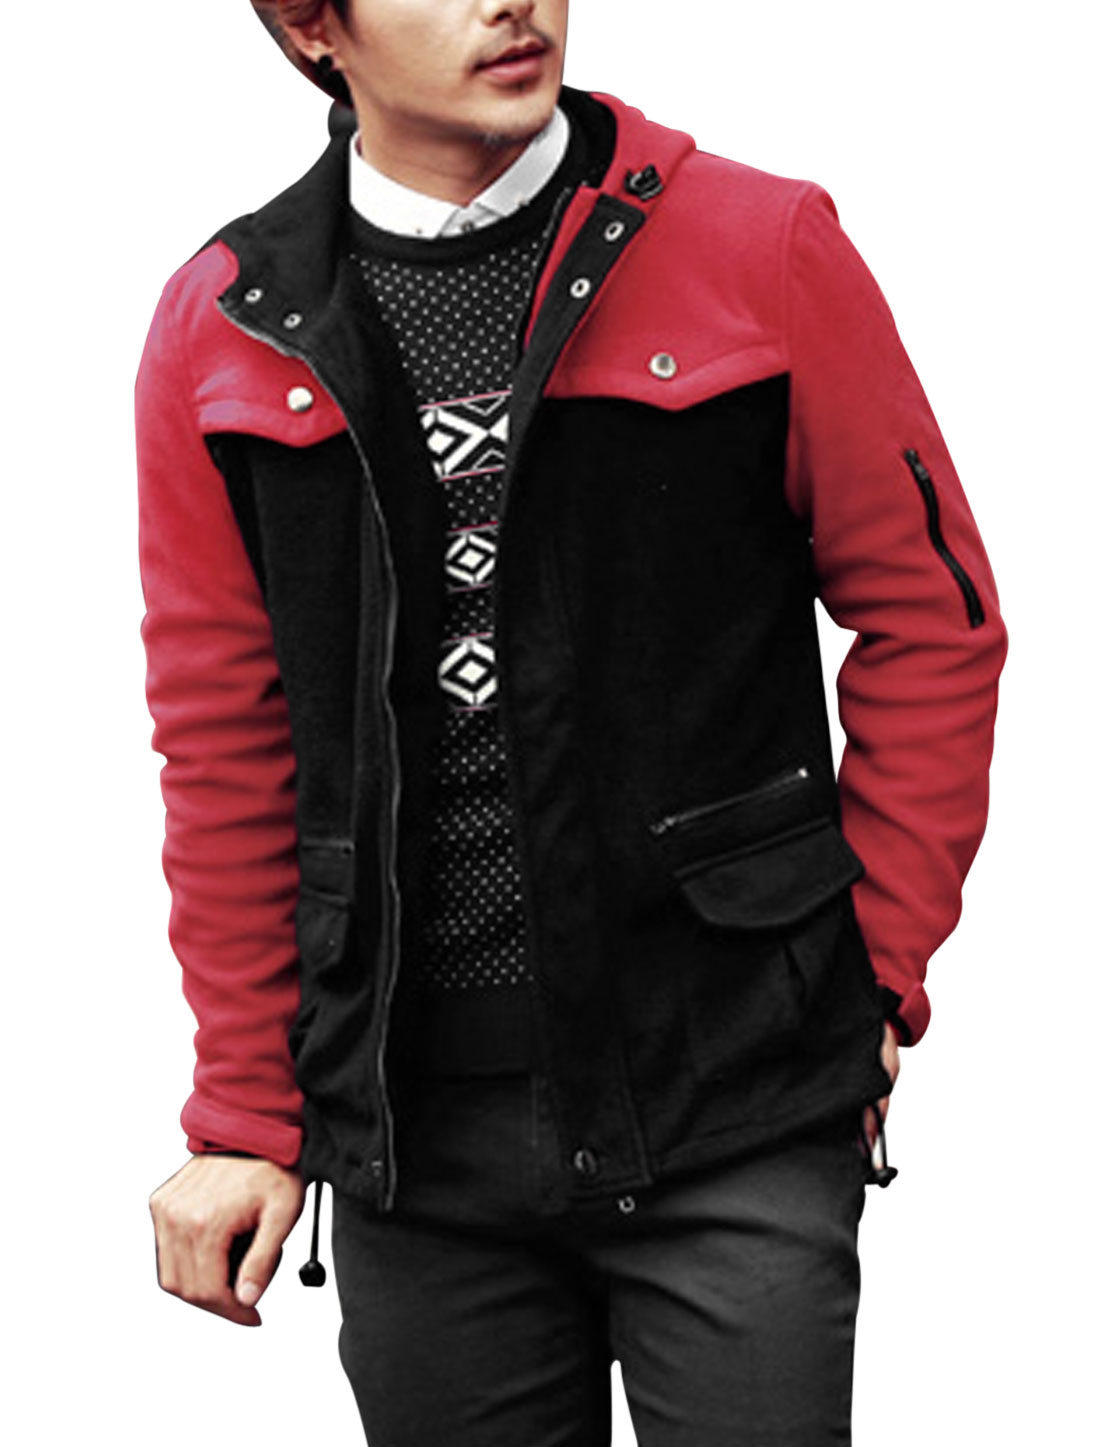 Men Hooded Drawcord Design Two Flap Pockets Casual Fleece Jacket Red Black M